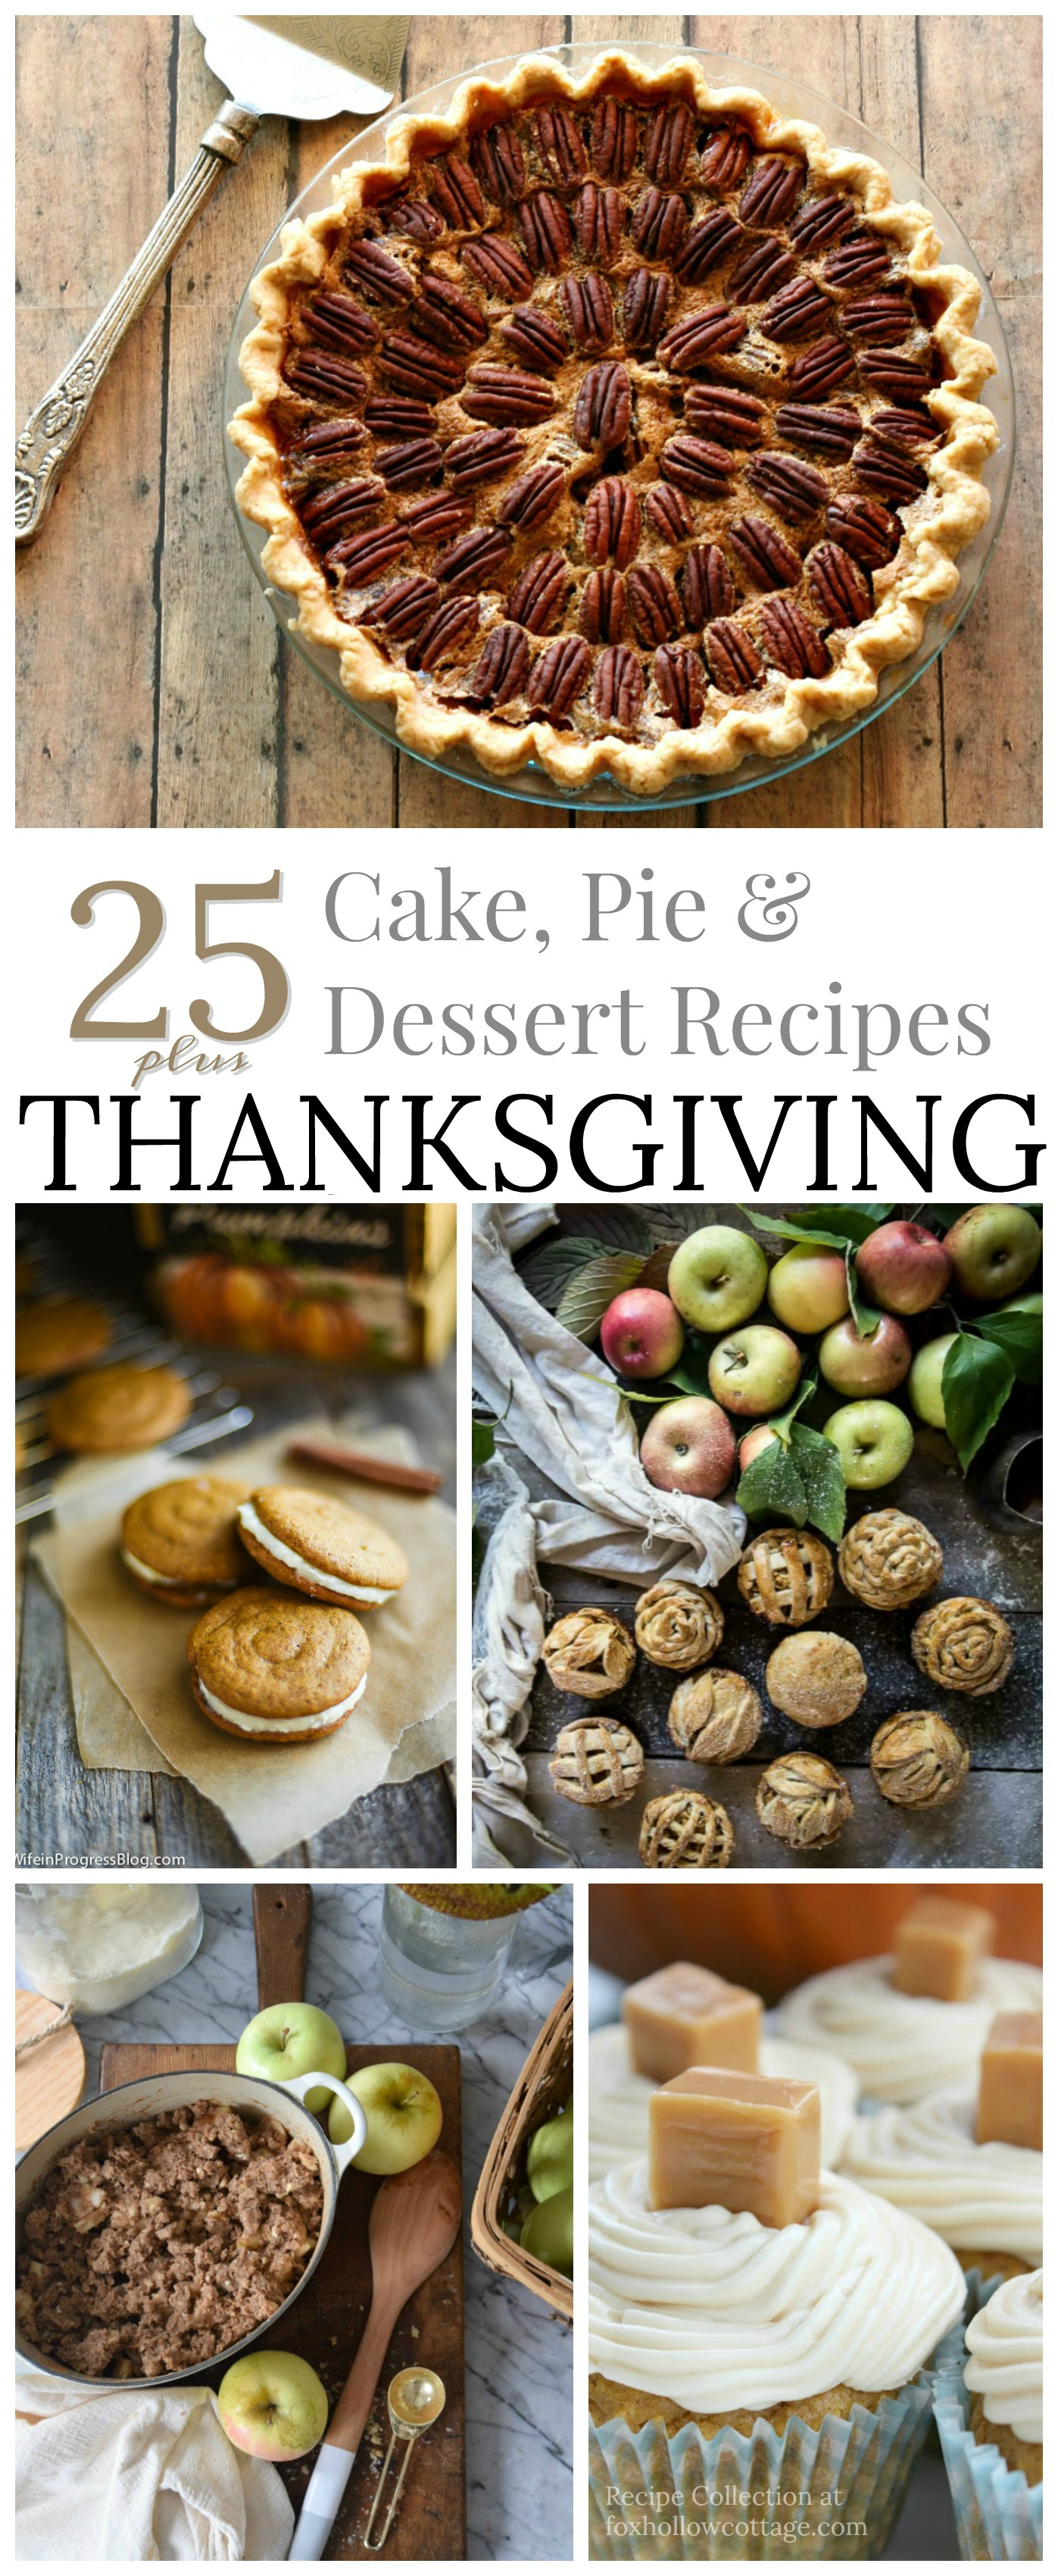 25+ Thanksgiving Pie, Cake + Dessert Recipes for your holiday table - Menu collection at foxhollowcottage.com